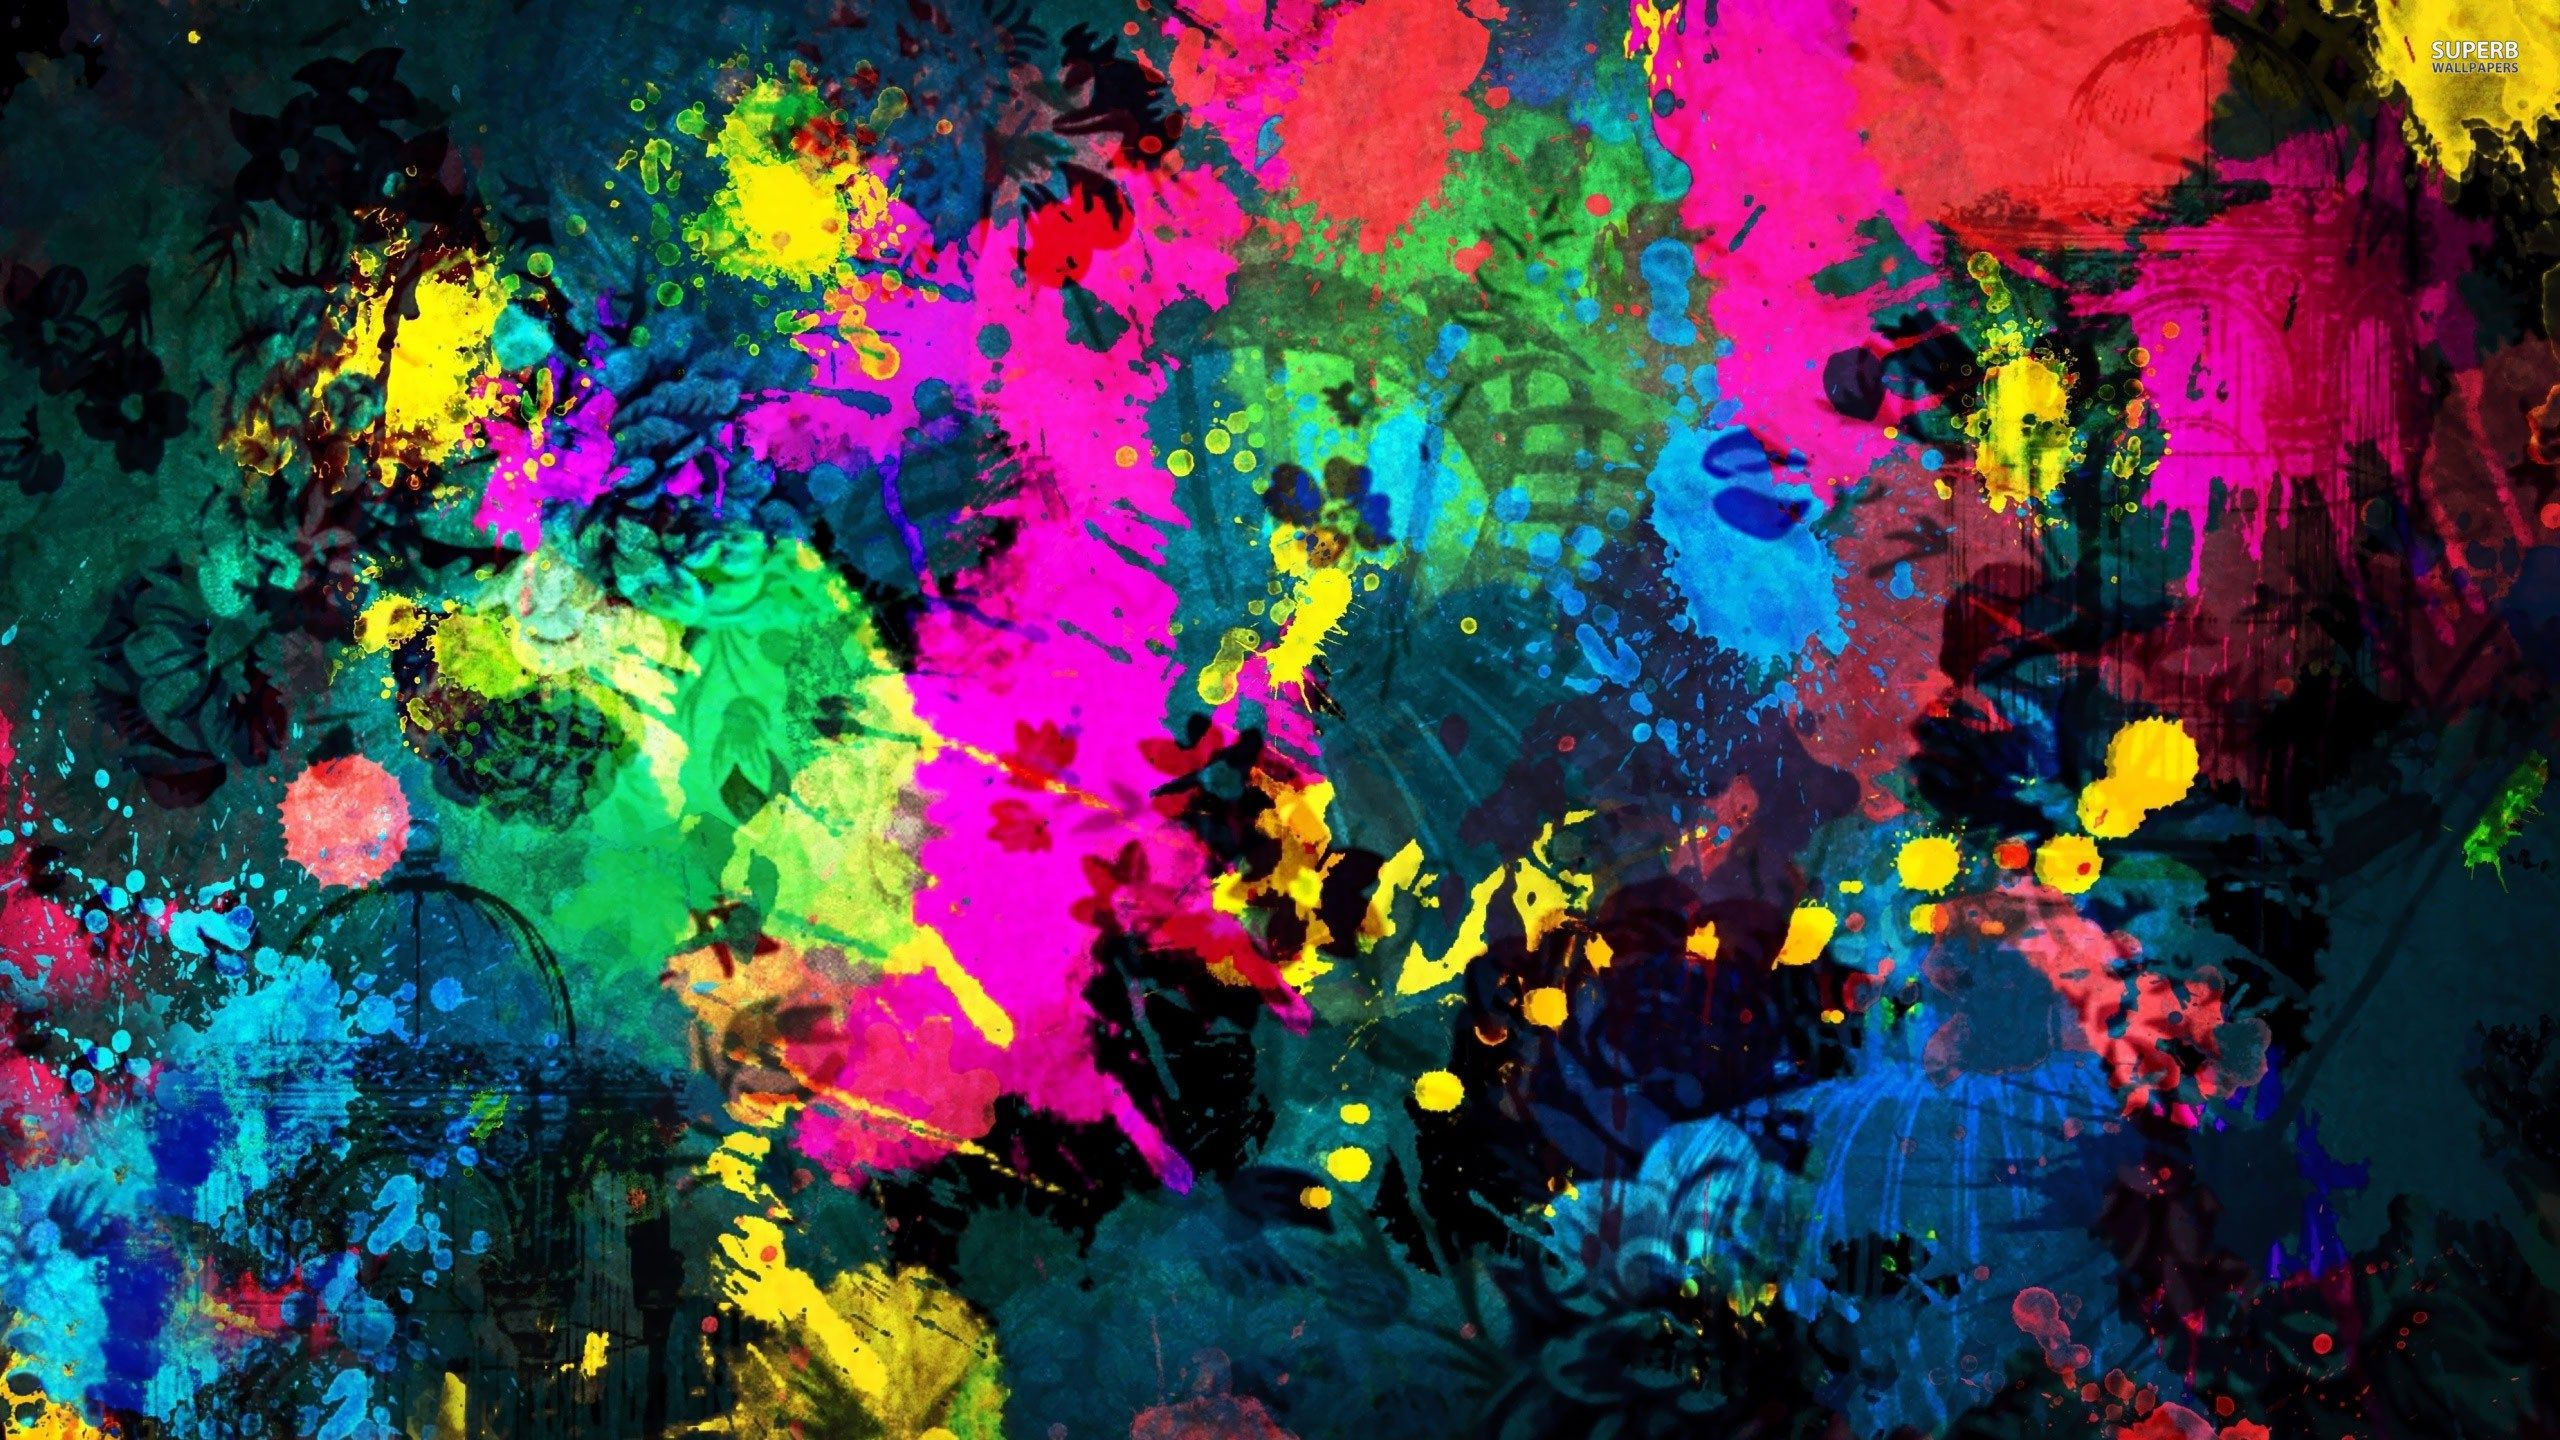 Colorful Wallpaper 2560x1440 For Tablets Abstract Art Wallpaper Art Wallpaper Abstract Wallpaper